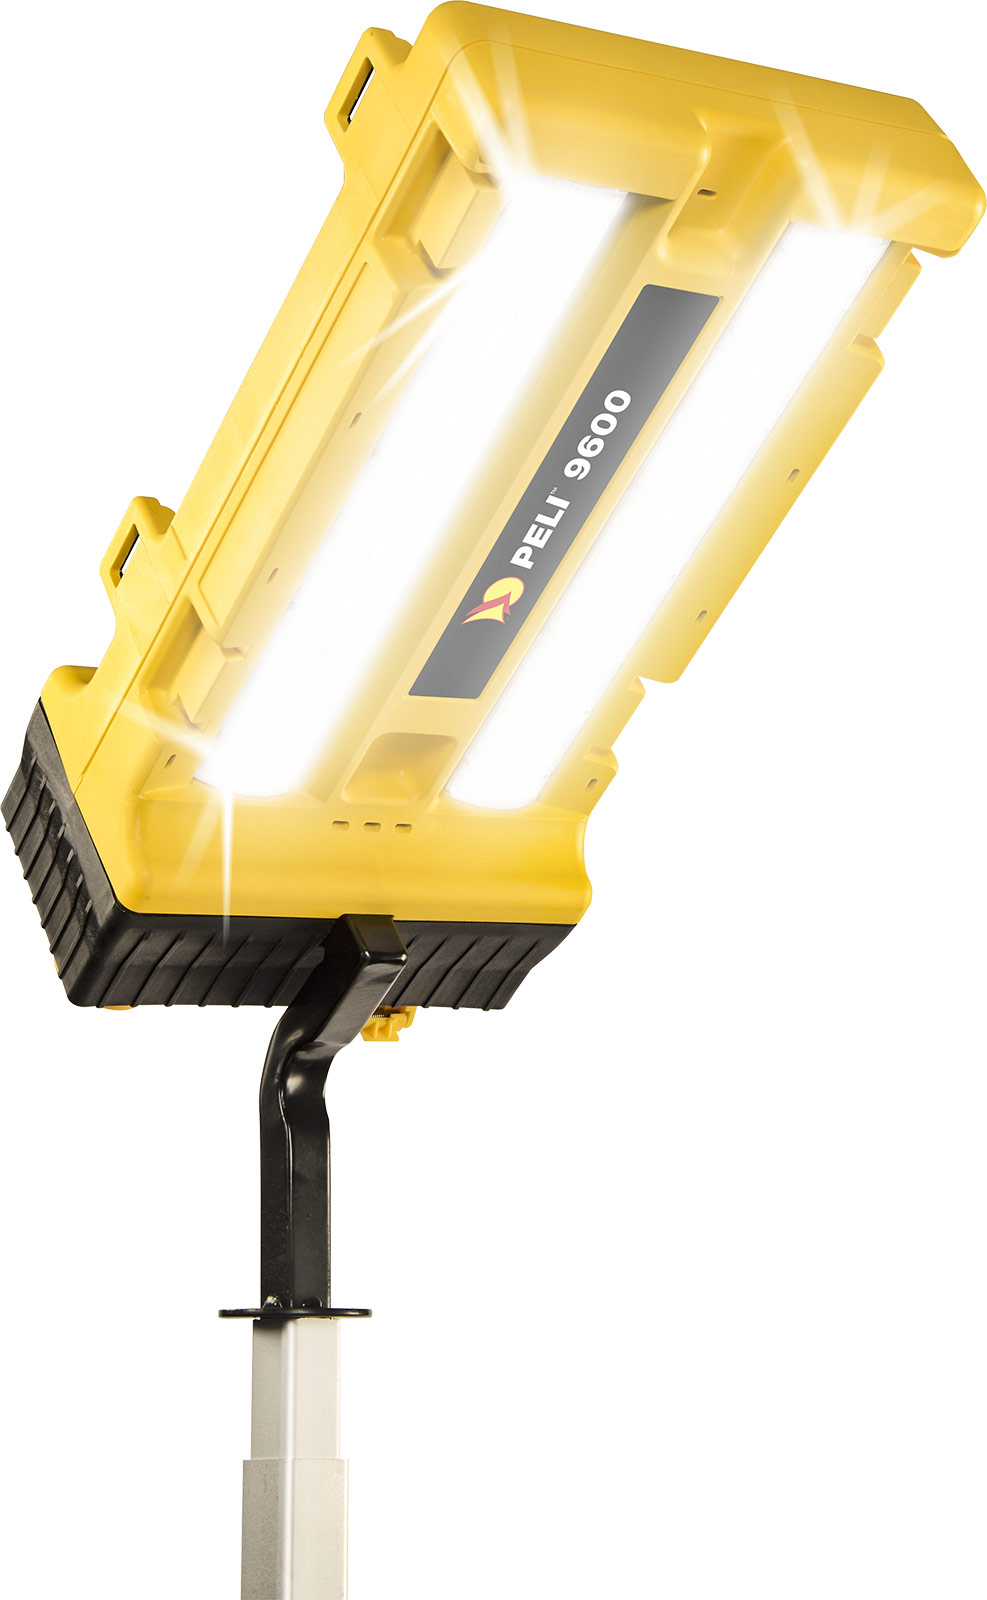 peli 9600 rals modular lighting system 9600